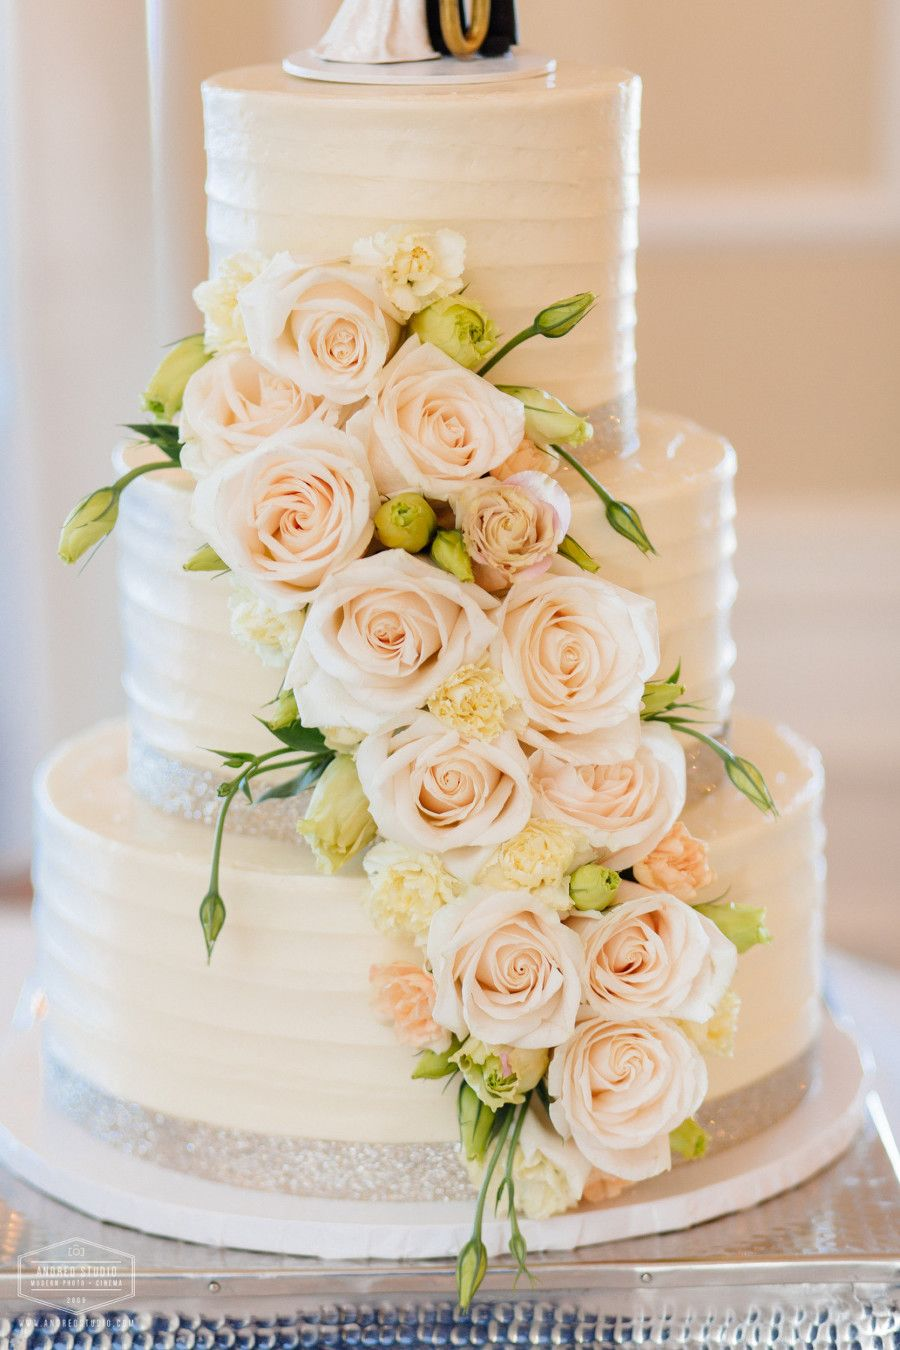 Wedding Cake Flowers by Jade Violet at River House Events | Wedding ...